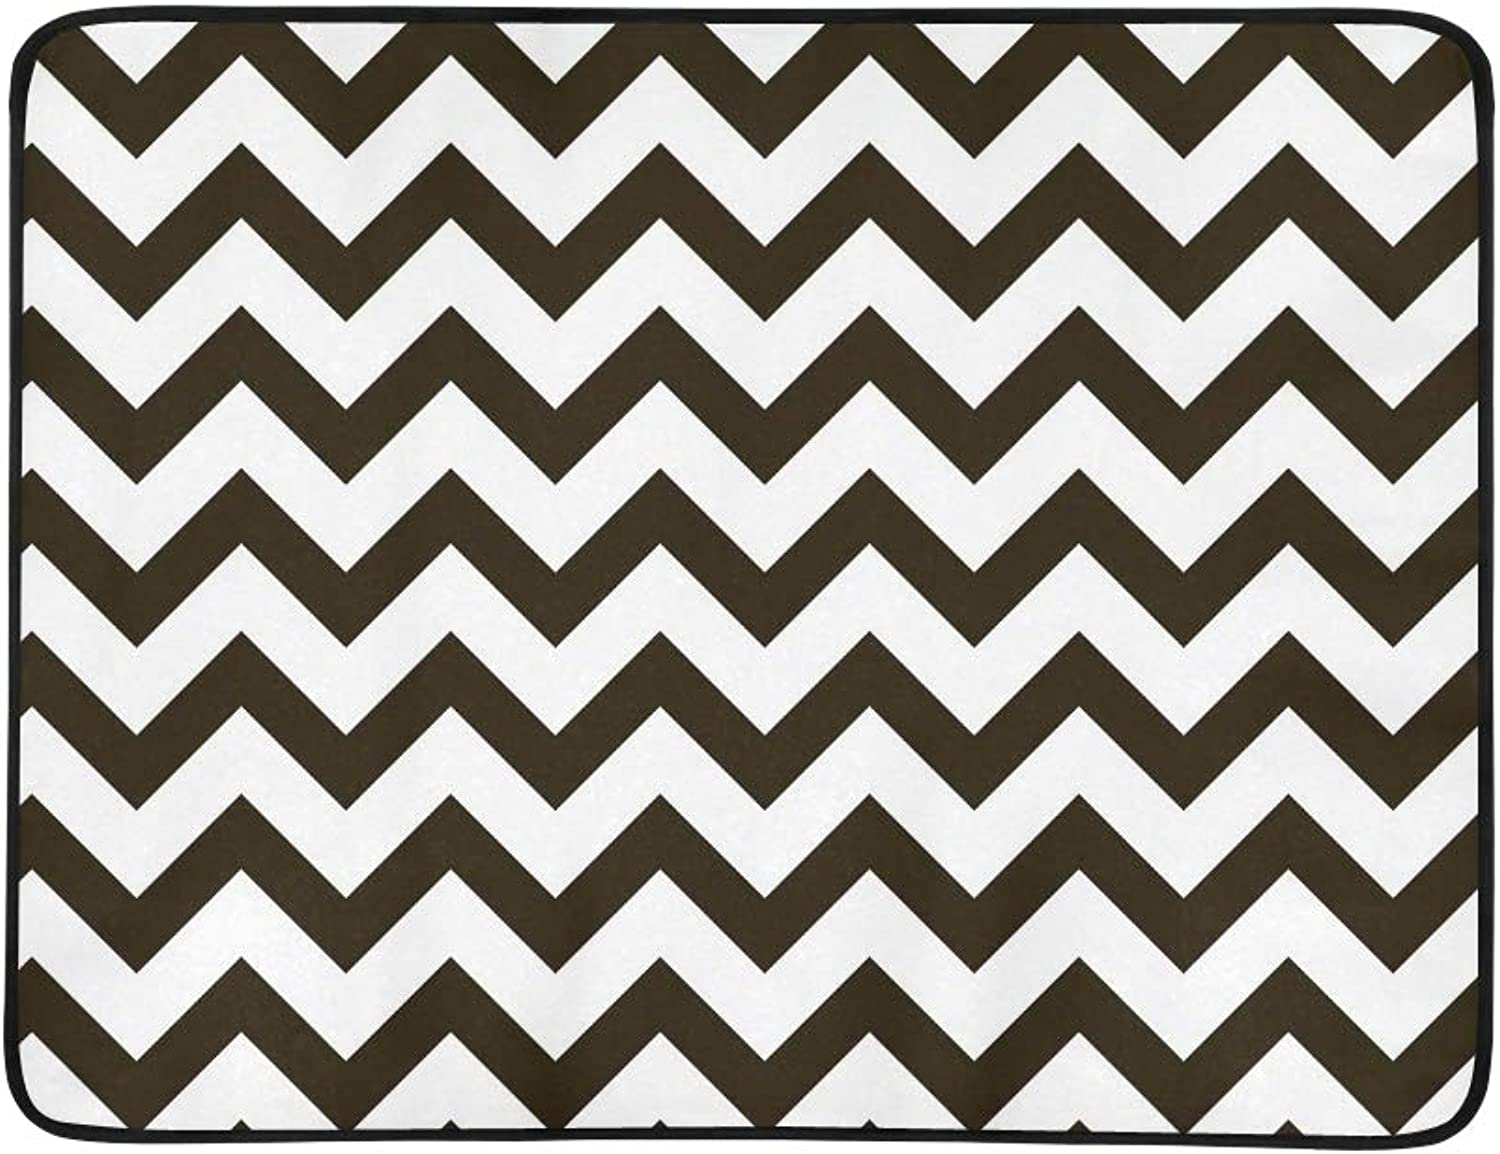 Zigzag Classic Chevron Portable and Foldable Blanket Mat 60x78 Inch Handy Mat for Camping Picnic Beach Indoor Outdoor Travel